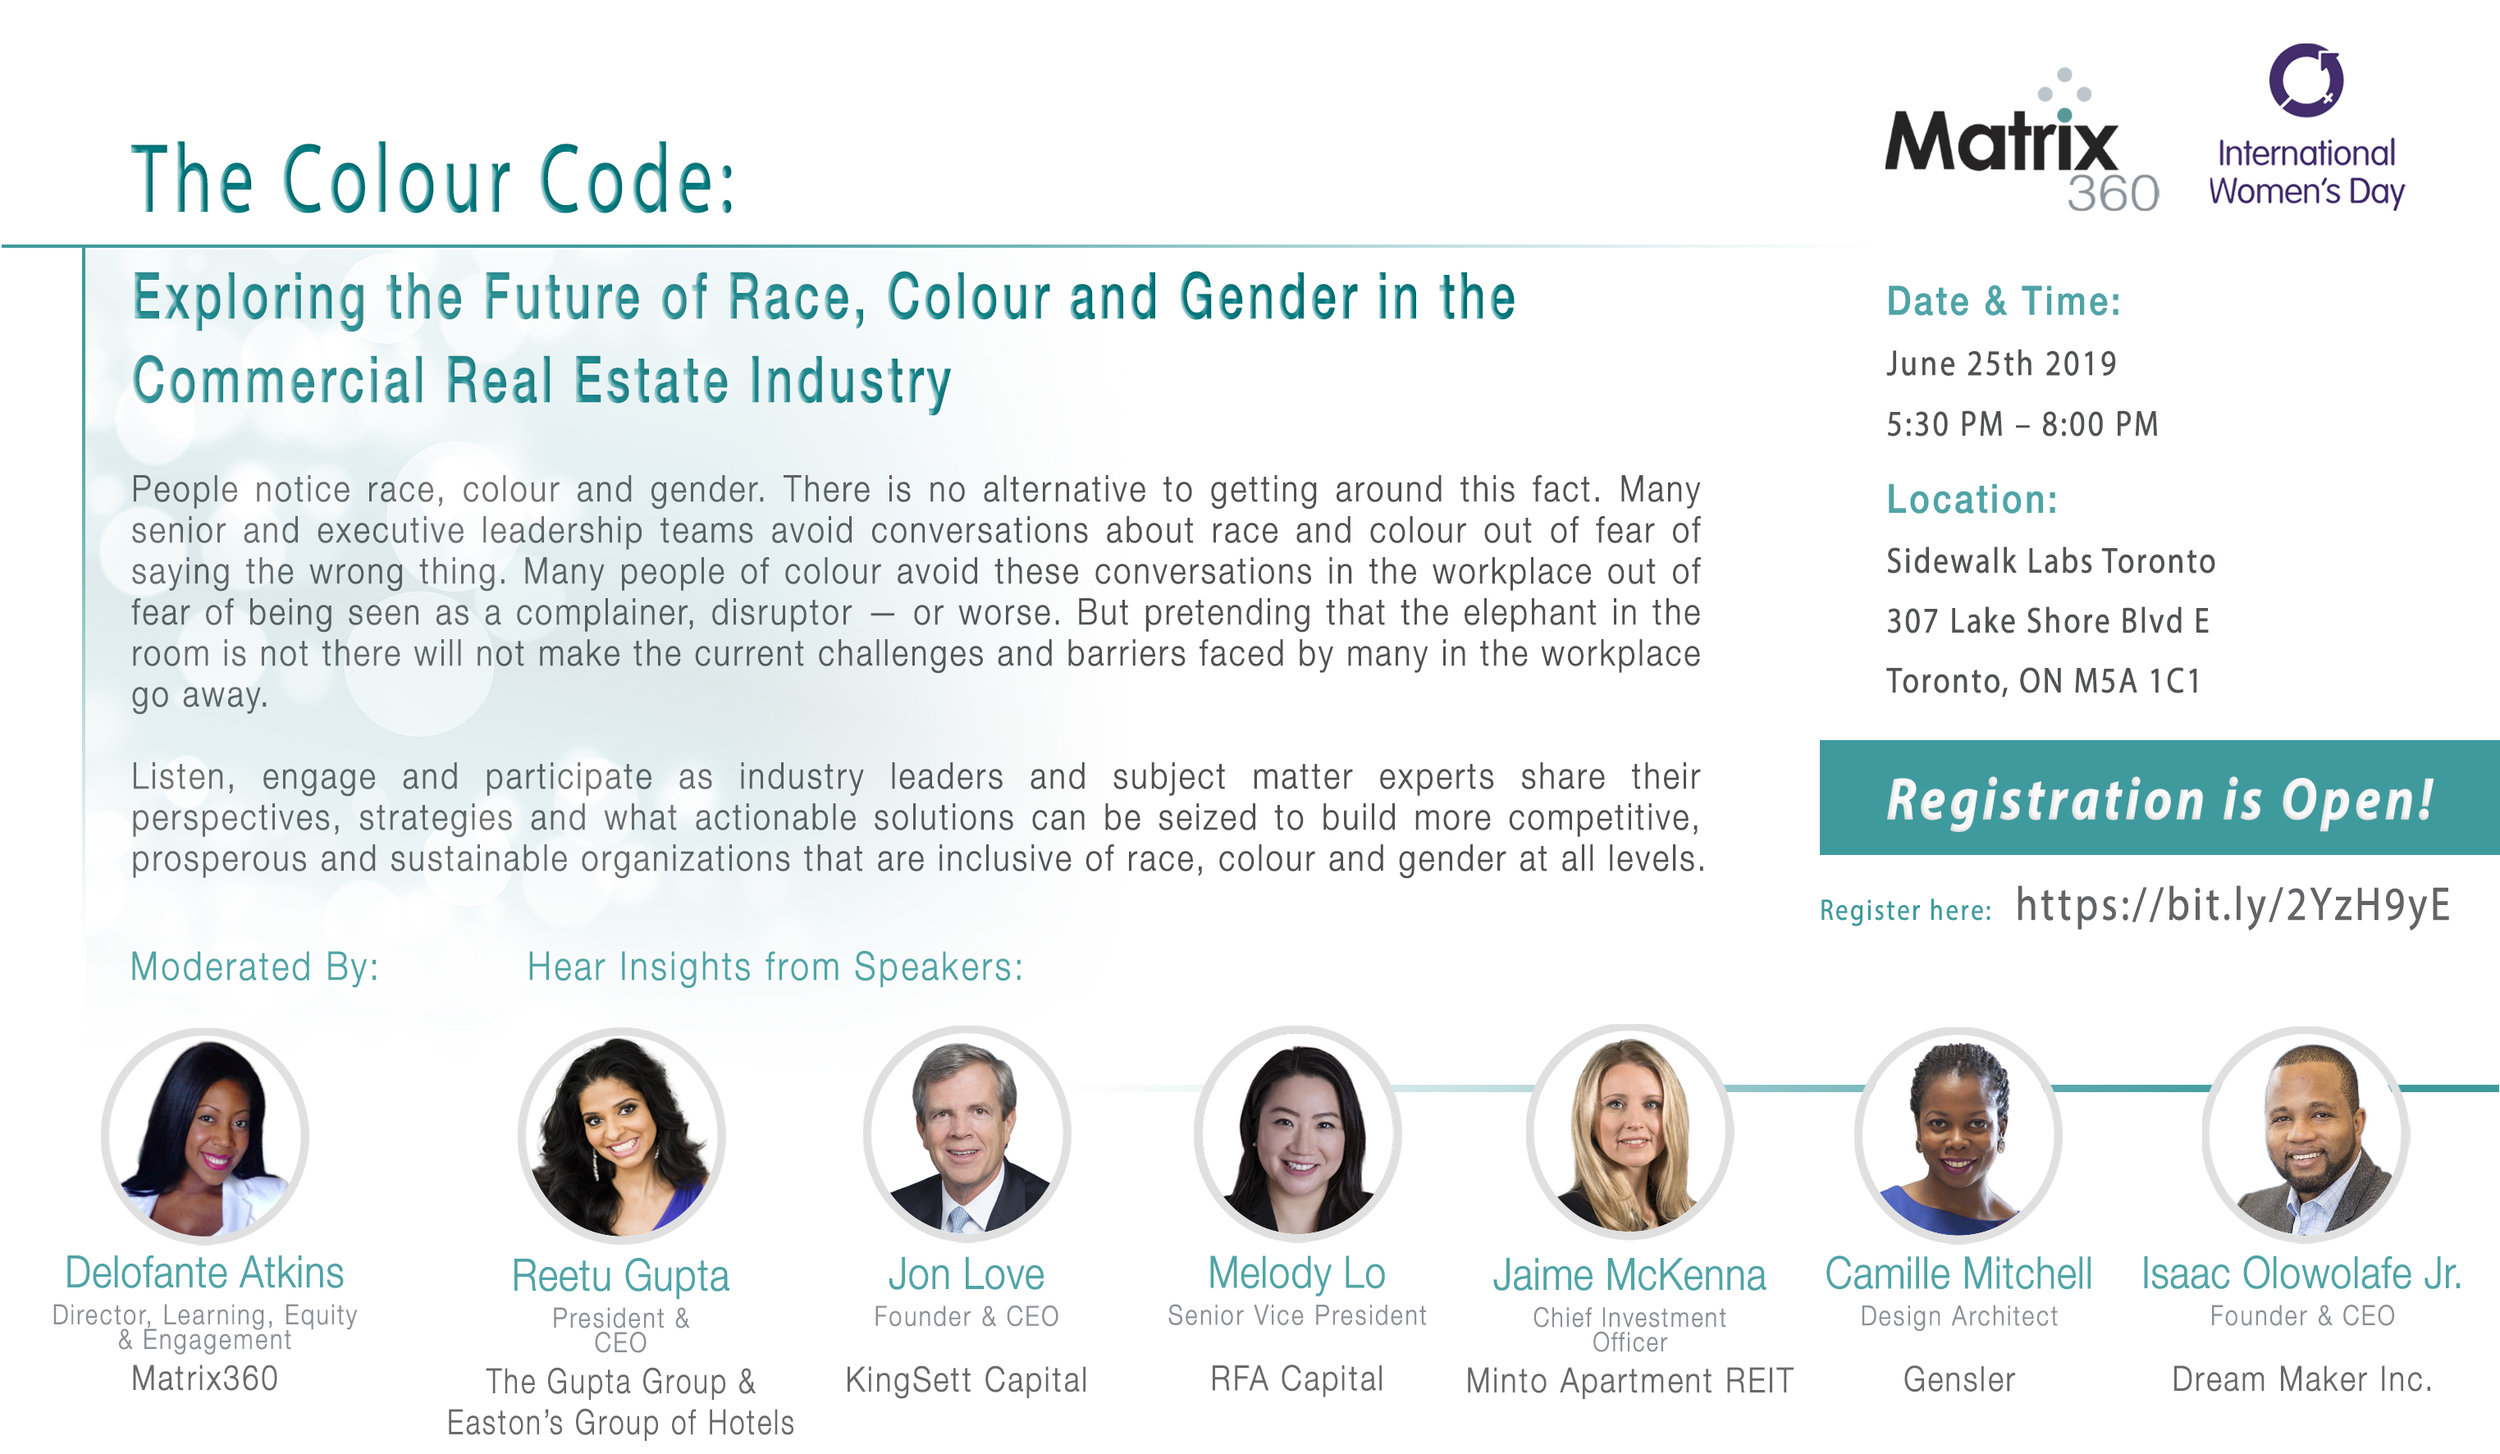 Matrix360 IWD June Event Flyer - The Colour Code FINAL.JPG